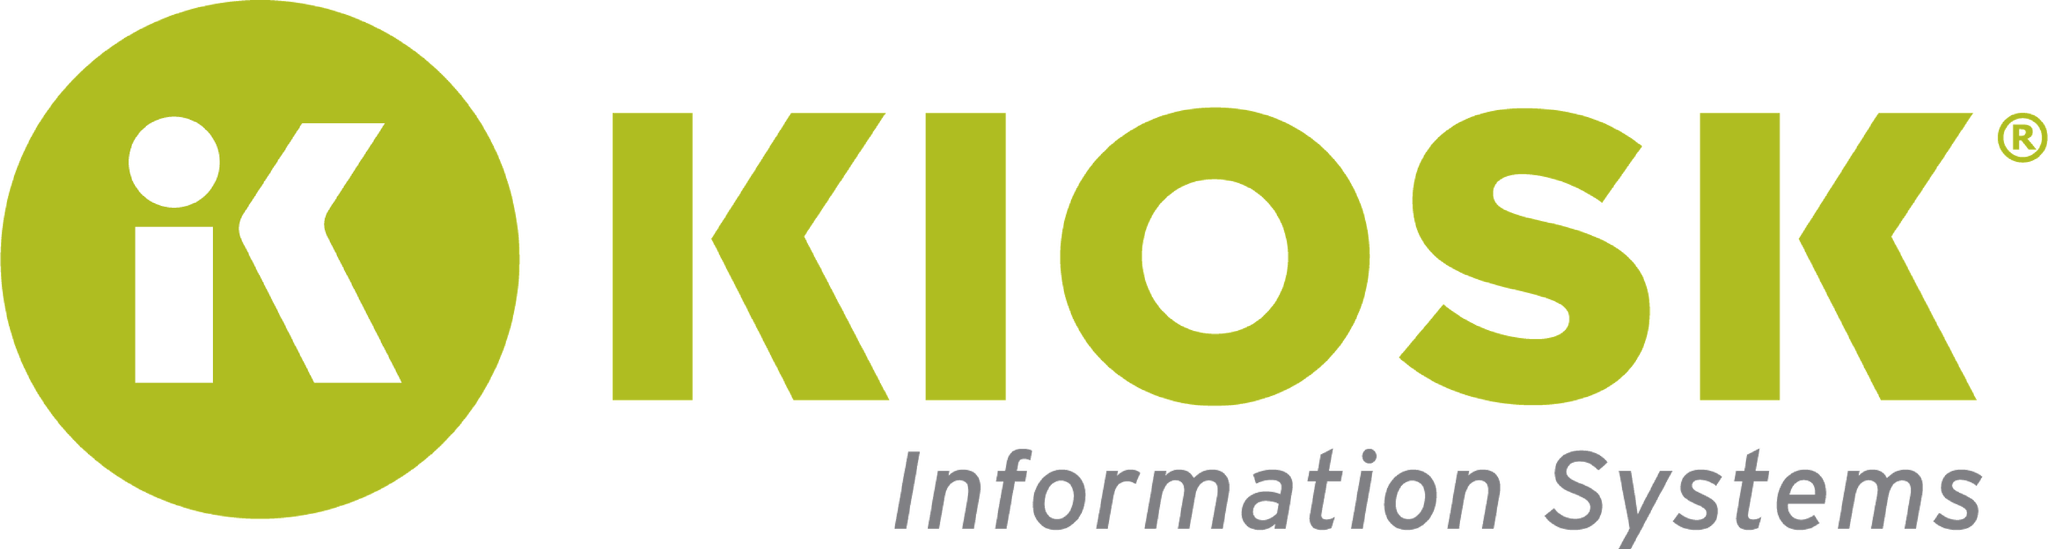 Kiosk Information Systems Europe GmbH